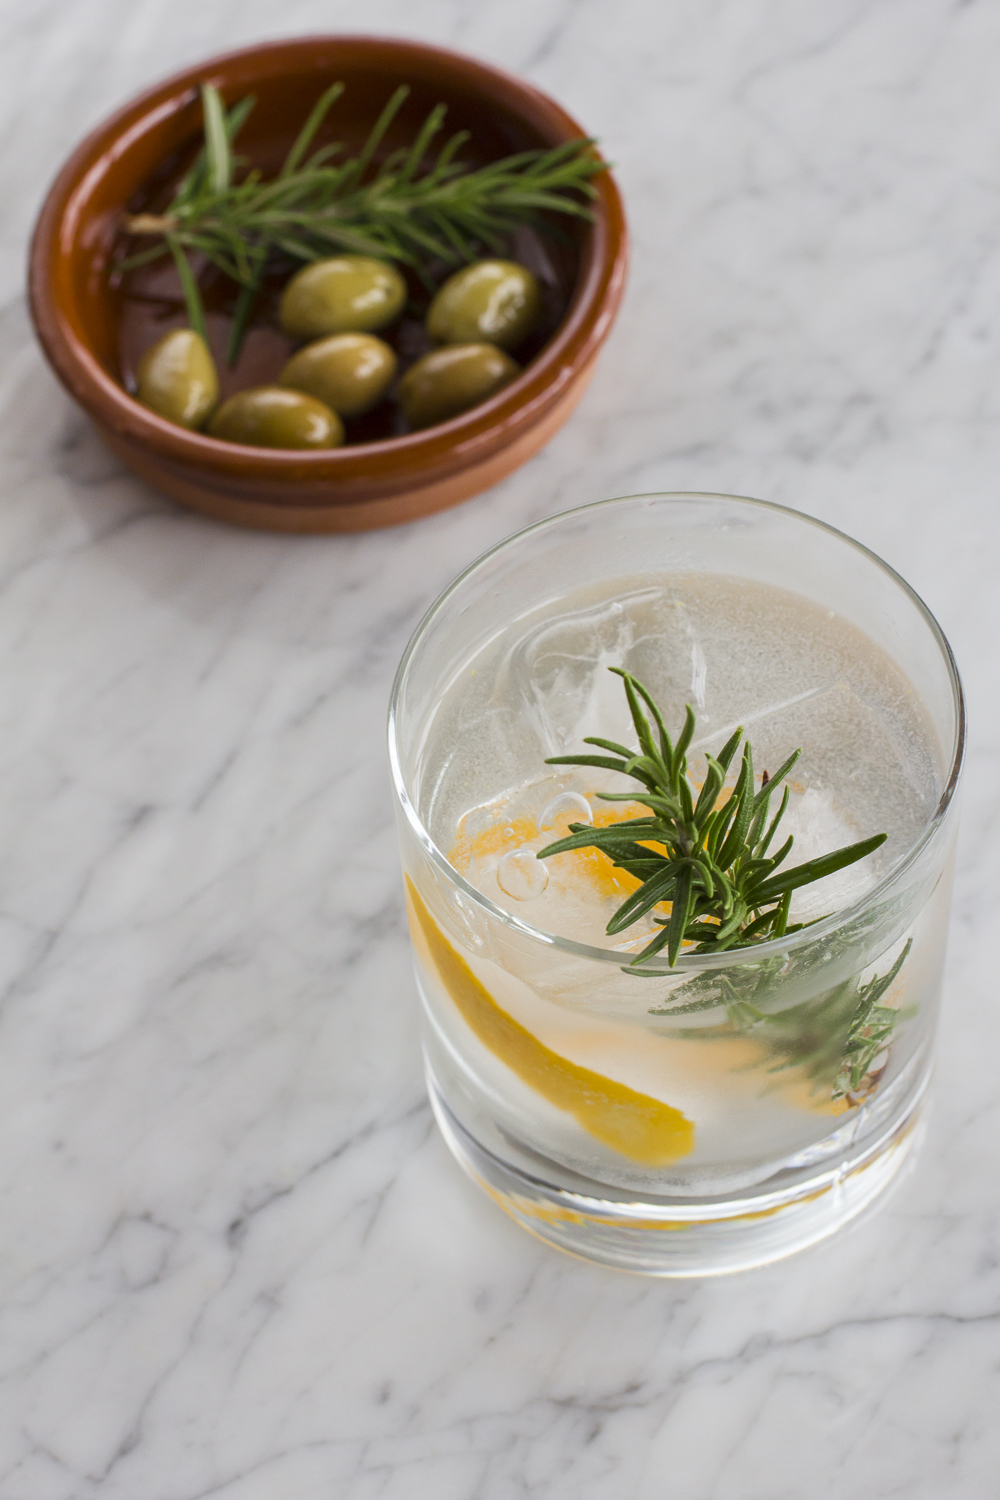 Rosemary and Orange Zest Gin Tonic © 2014 Helena McMurdo